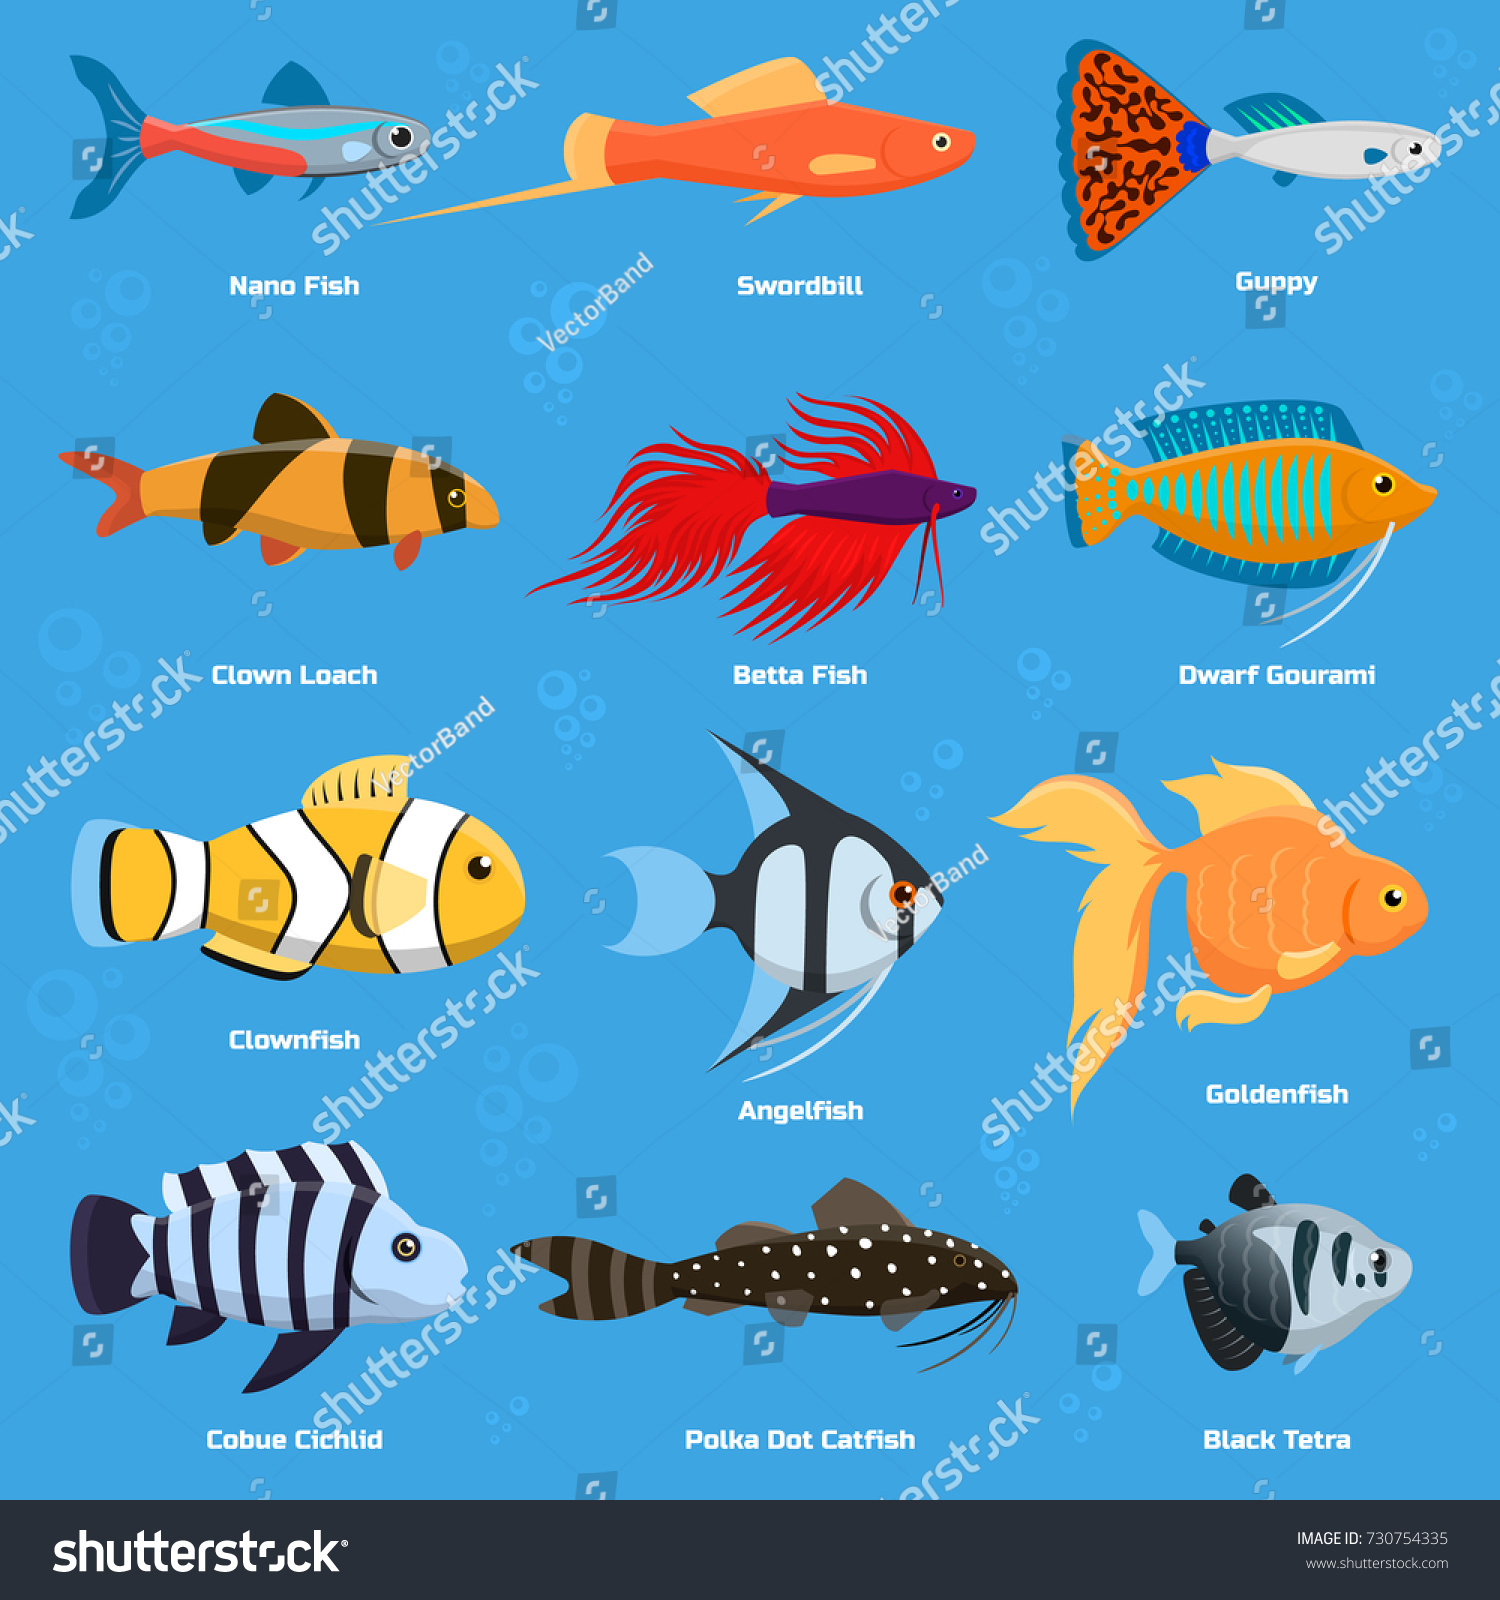 Tropical fish chart images galleries for Names for pet fish